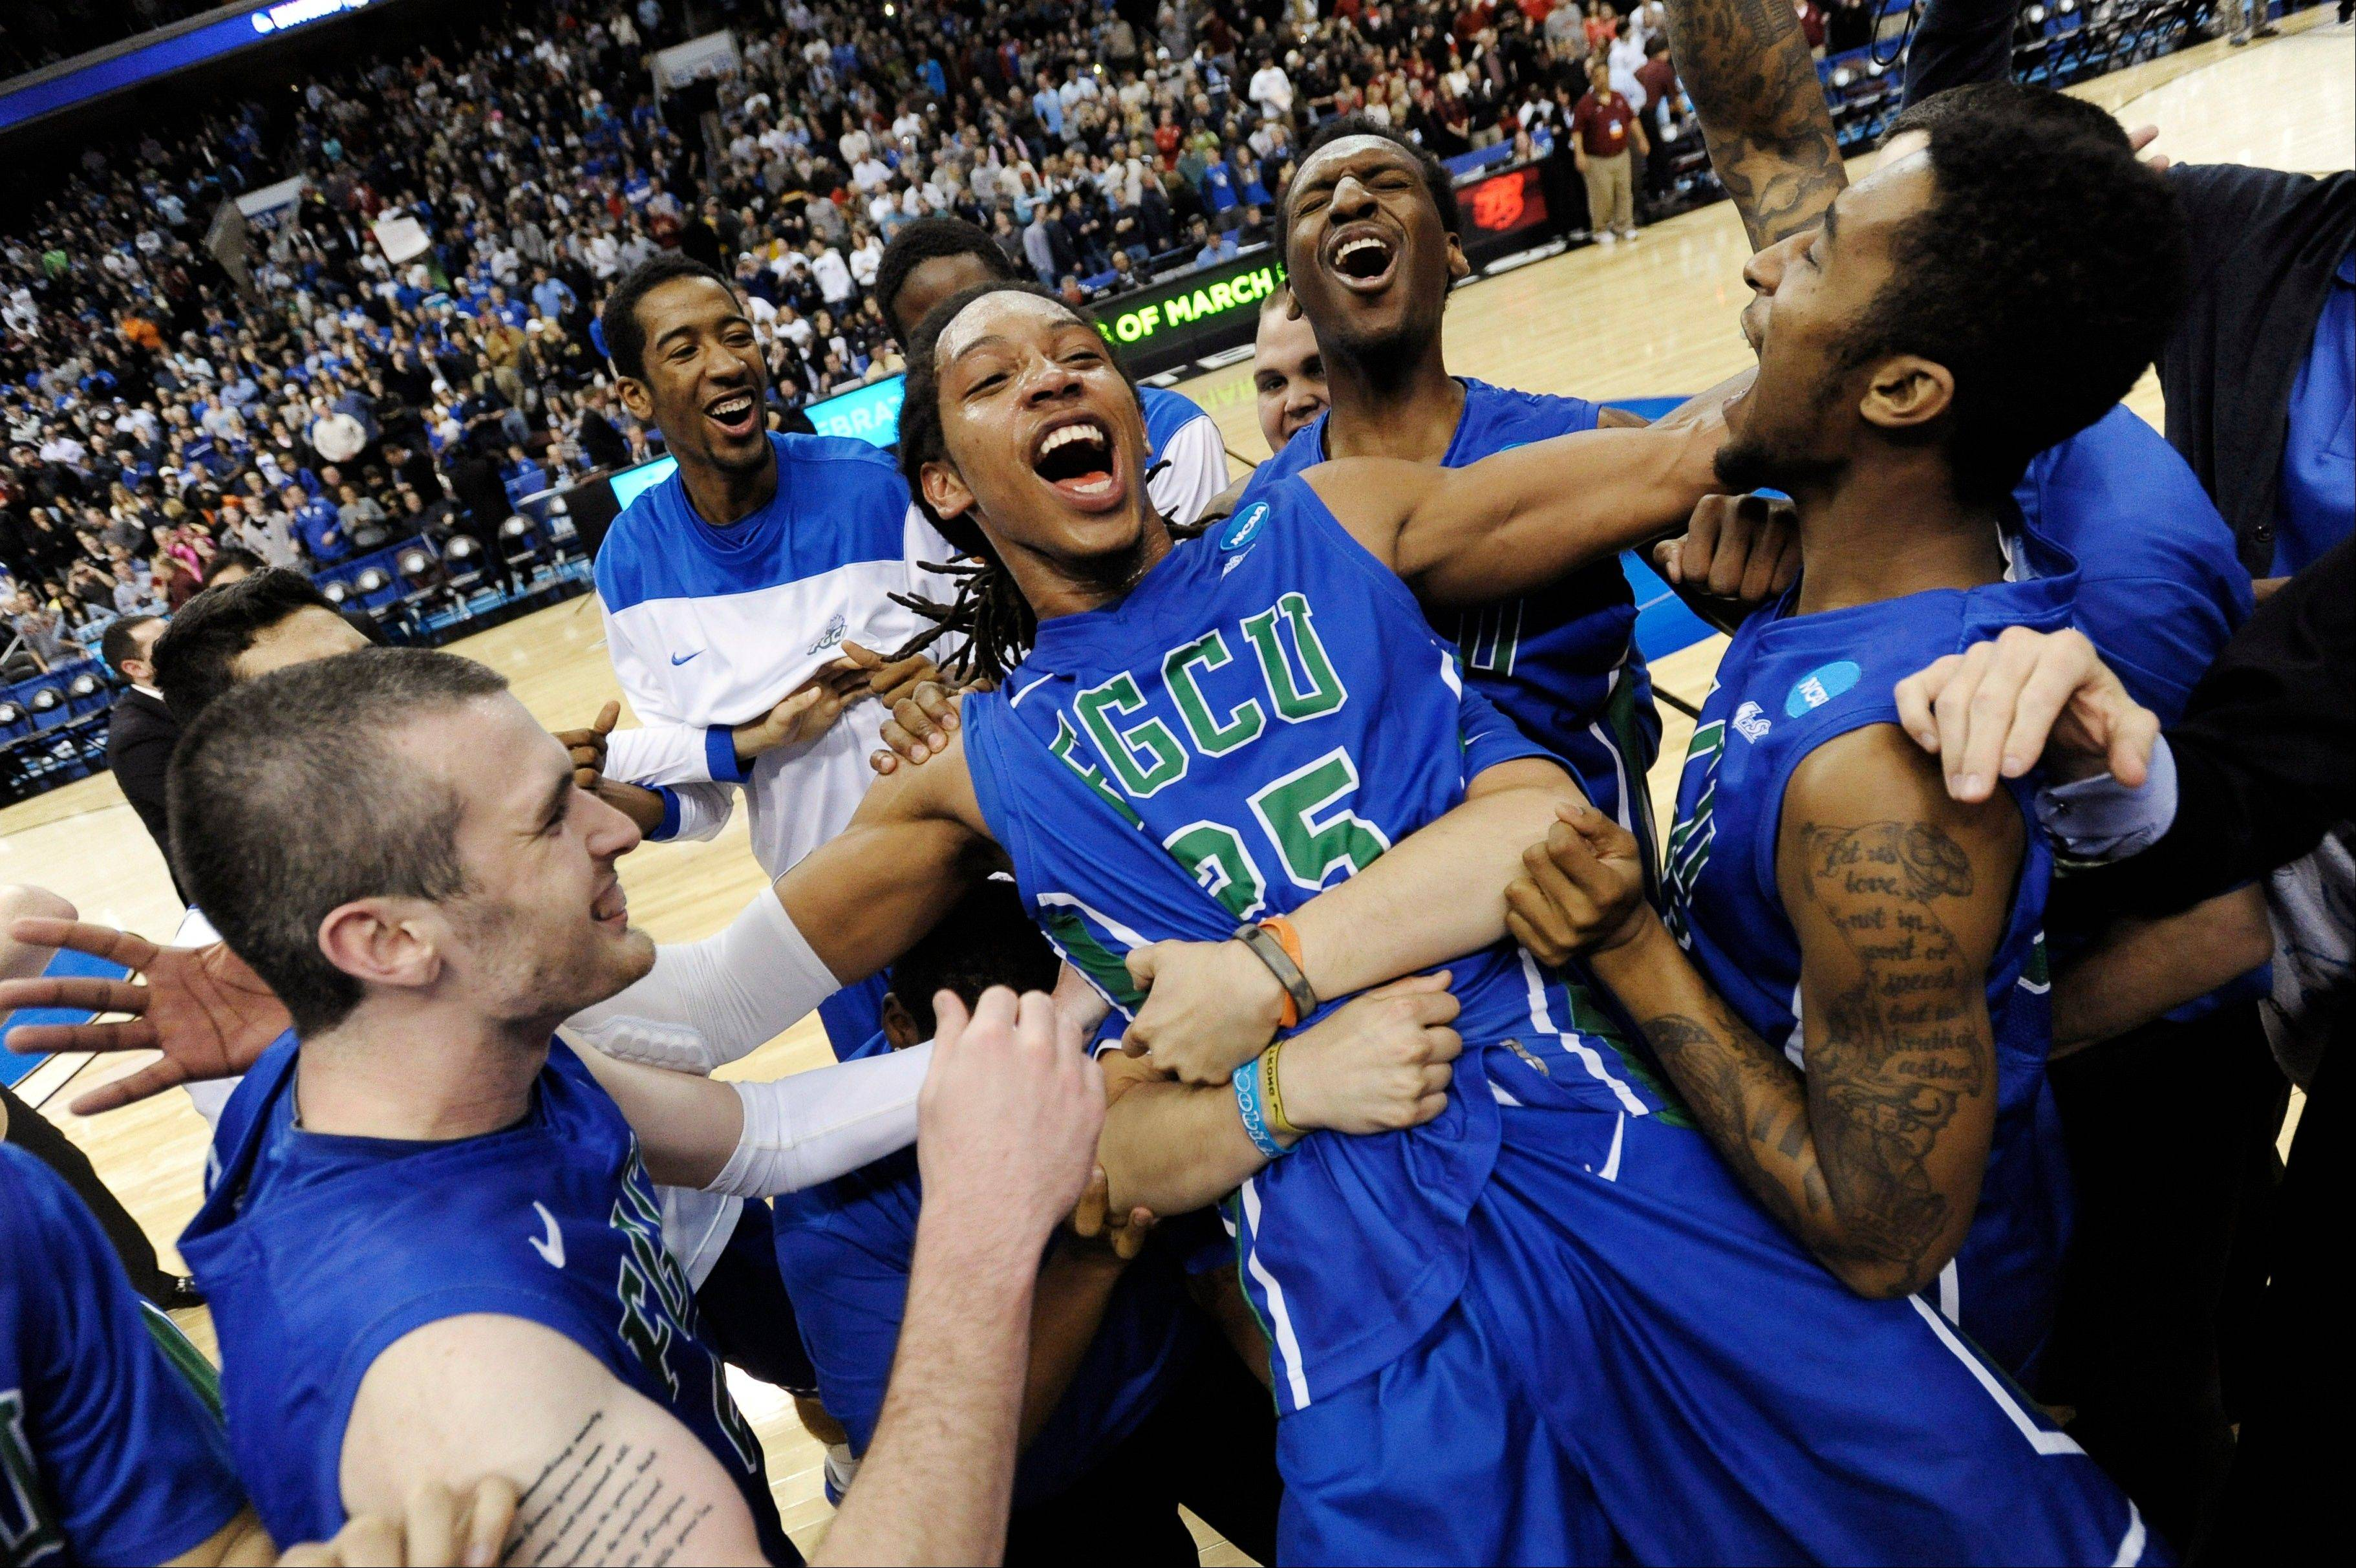 Florida Gulf Coast's Sherwood Brown, center, celebrates with teammates after their 81-71 win over San Diego State in a third-round game in the NCAA college basketball tournament, Sunday, March 24, 2013, in Philadelphia.